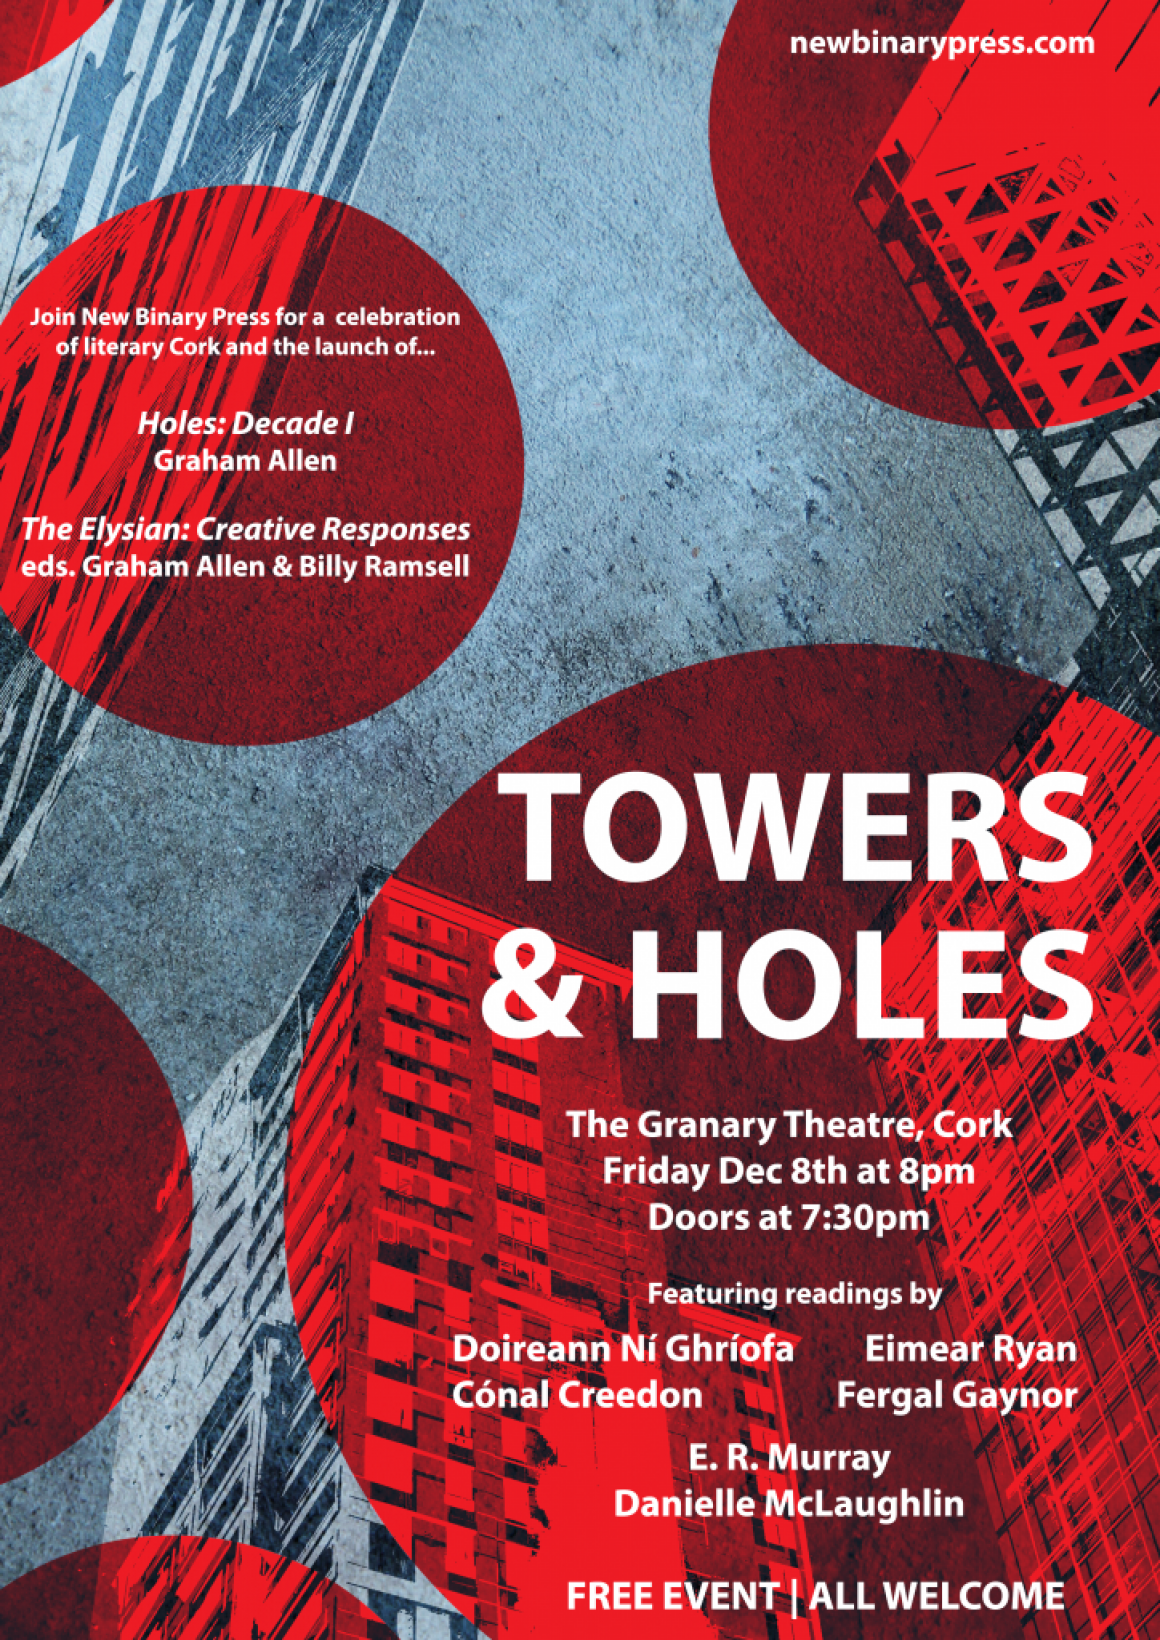 Launch of 'The Elysian: Creative Responses' and Graham Allen's 'Holes Decade 1'